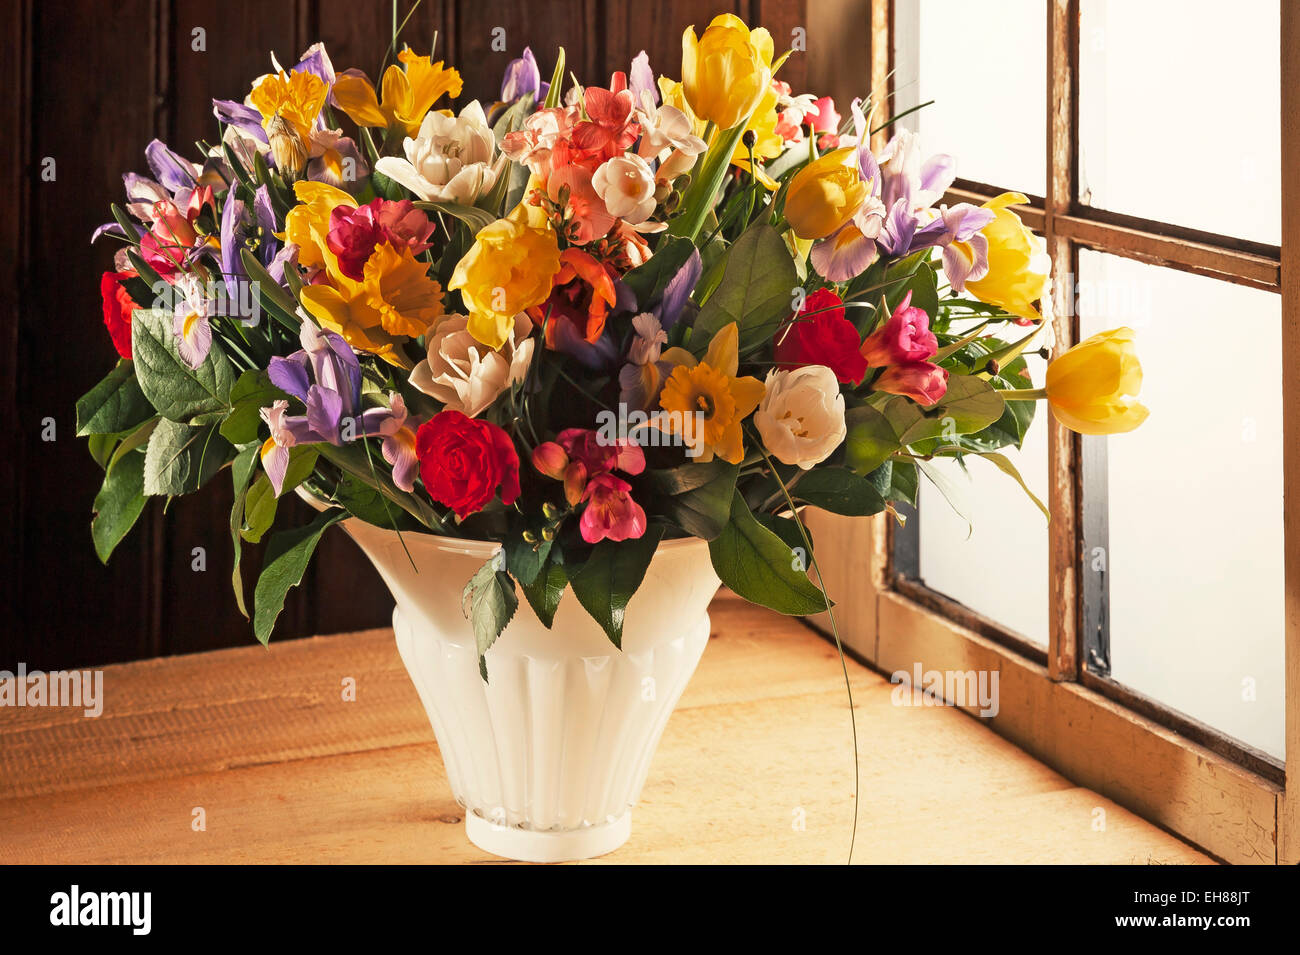 Colourful spring bouquet in a vase in front of a wooden wall by a window - Stock Image